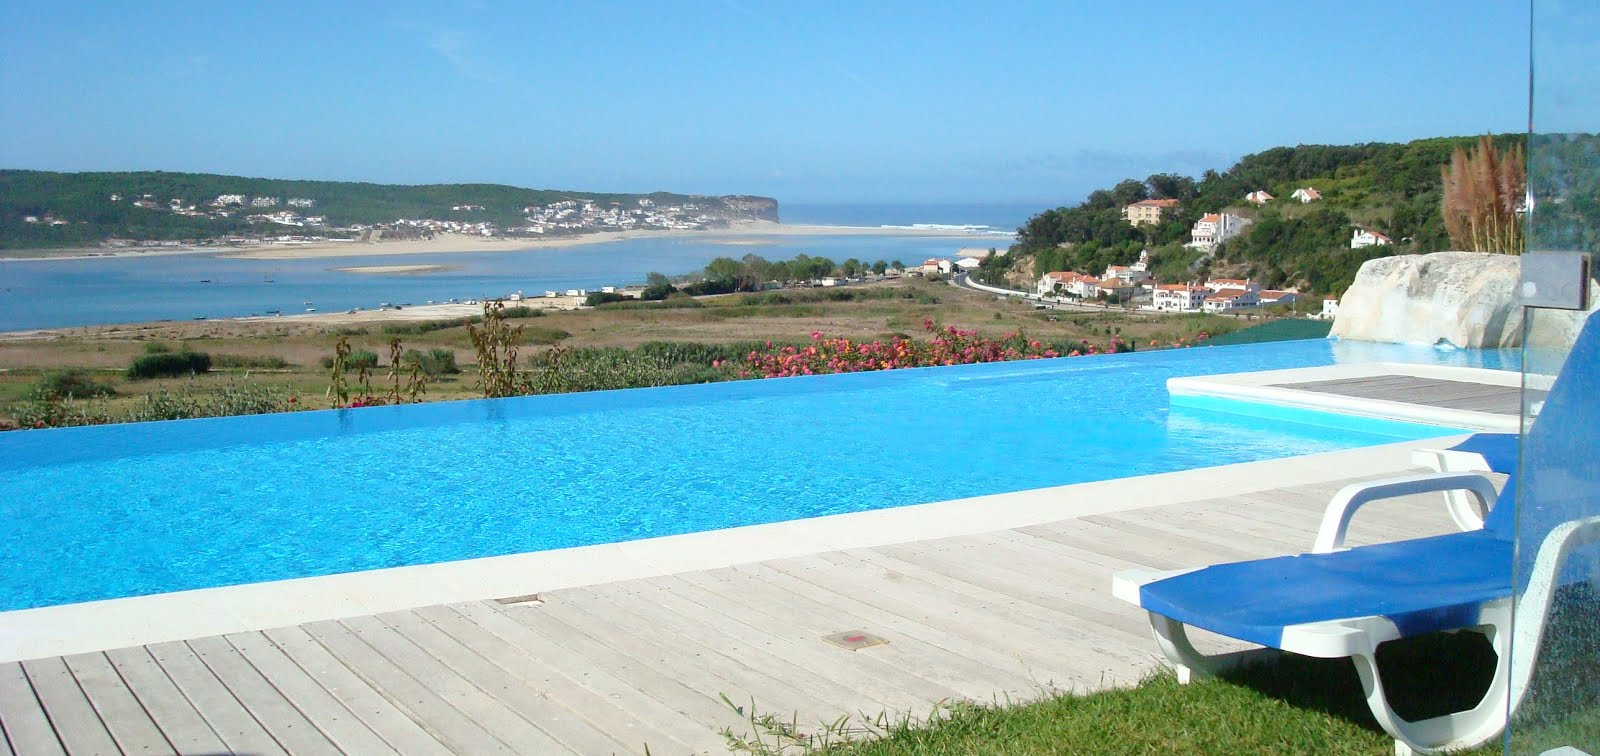 Casa do Lago, families friendly villa, Portugal